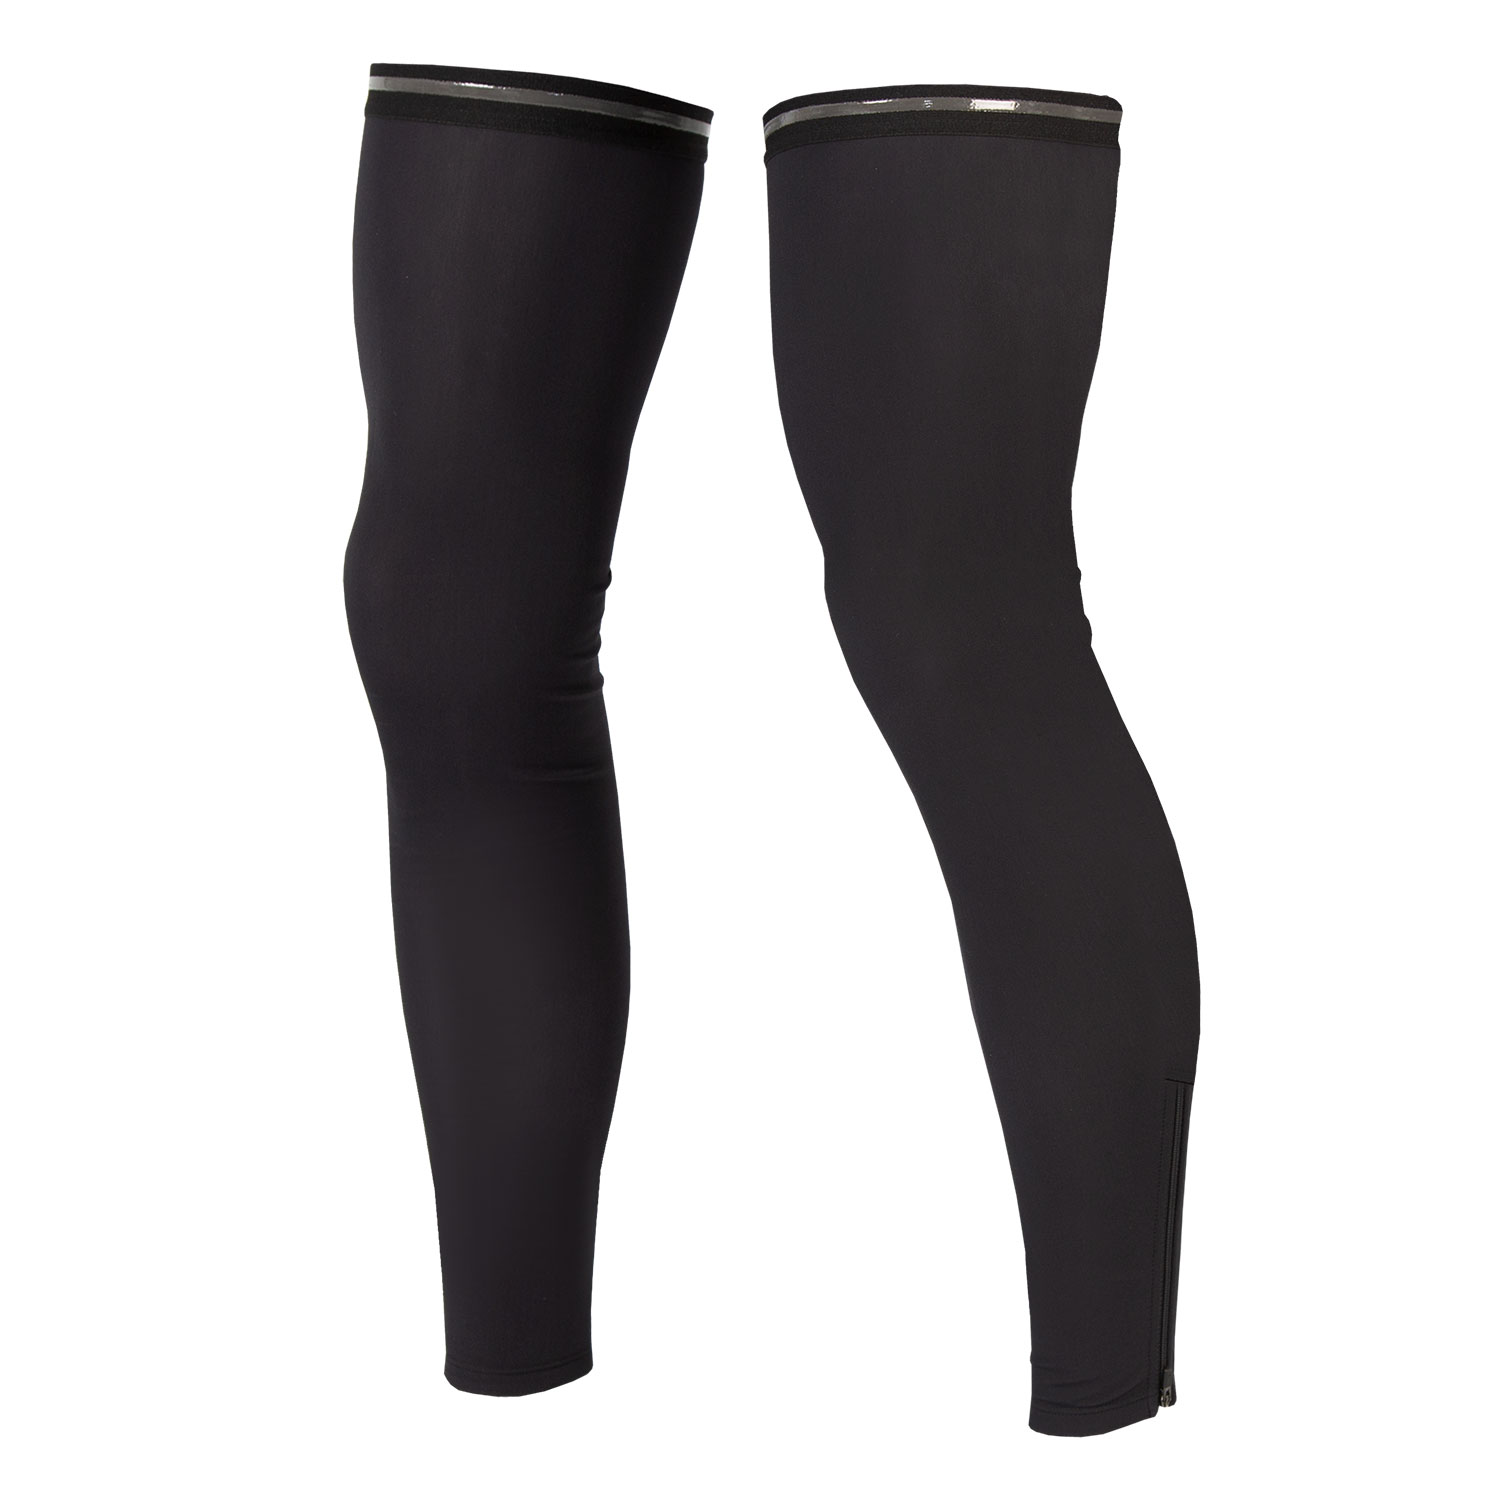 Endura FS260-Pro (L-XL) Thermo Cycling Leg Warmer